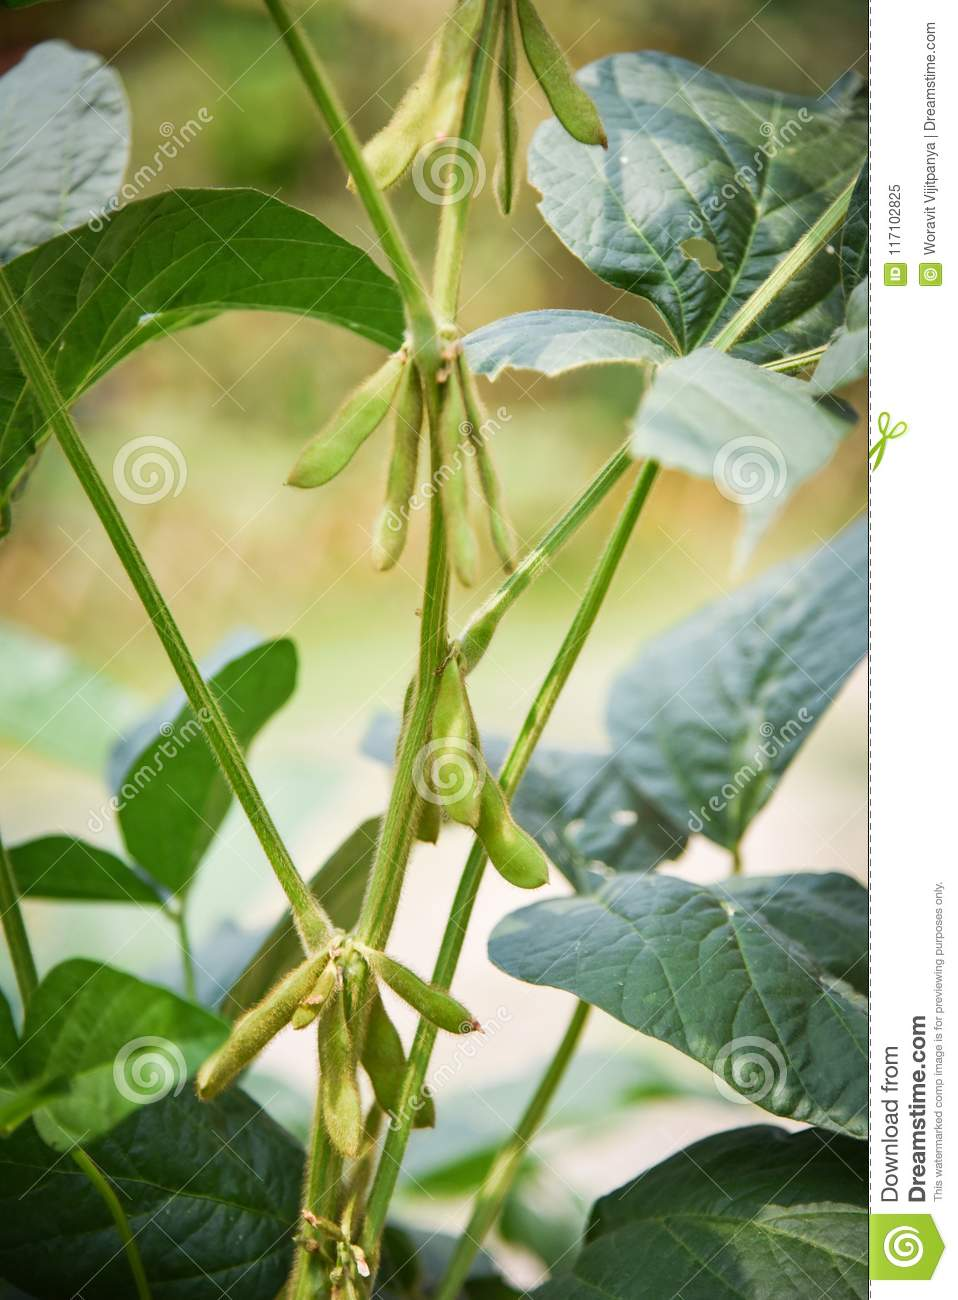 soybean plant on the tree stock image image of legume 117102825